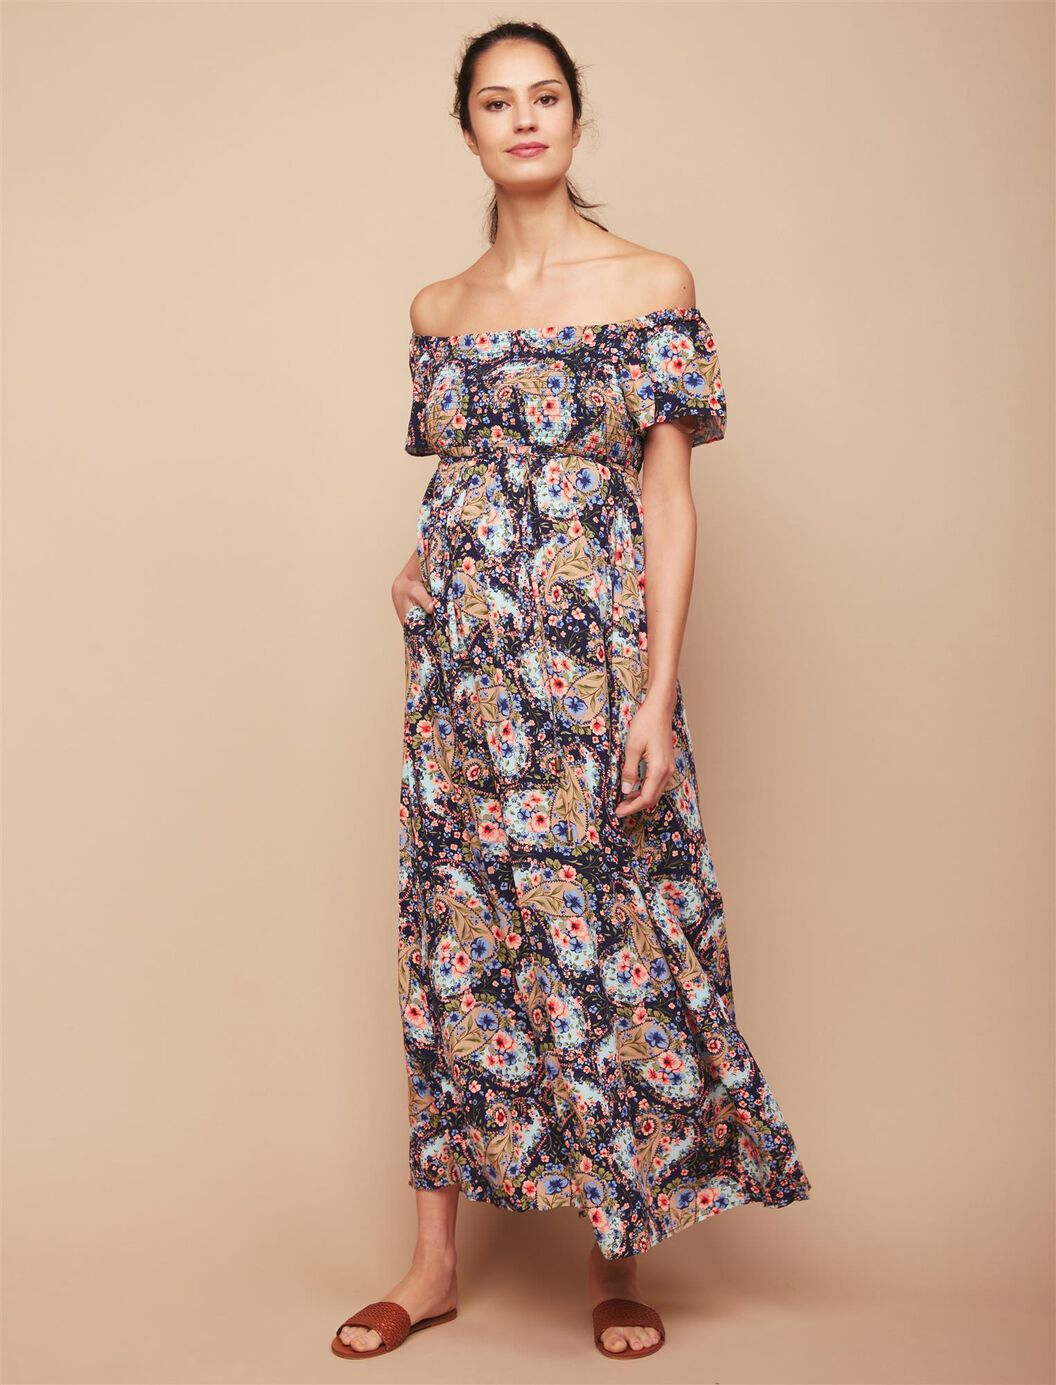 Jessica simpson floral bodycon maternity dress motherhood jessica simpson smocked maternity maxi dress at motherhood maternity in frisco tx tuggl ombrellifo Gallery